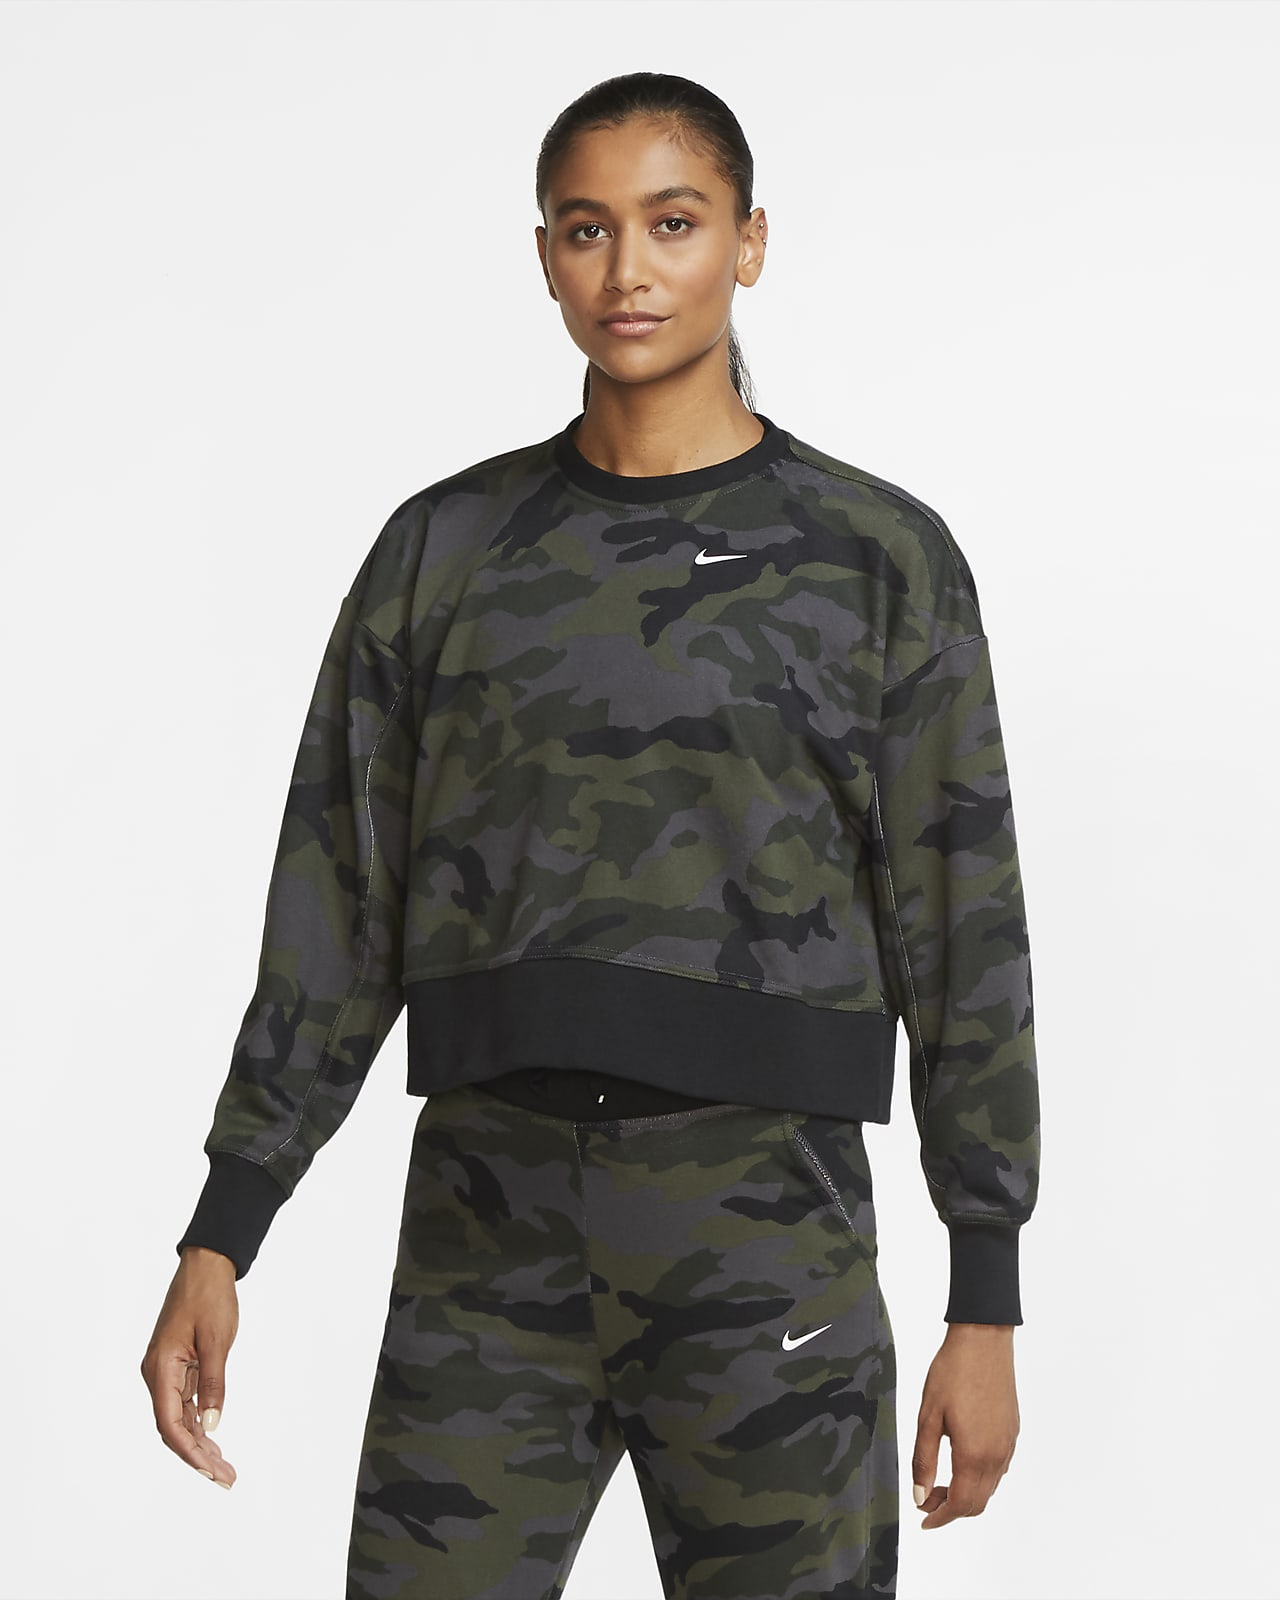 Nike Dri-FIT Get Fit Women's Camo Training Crew